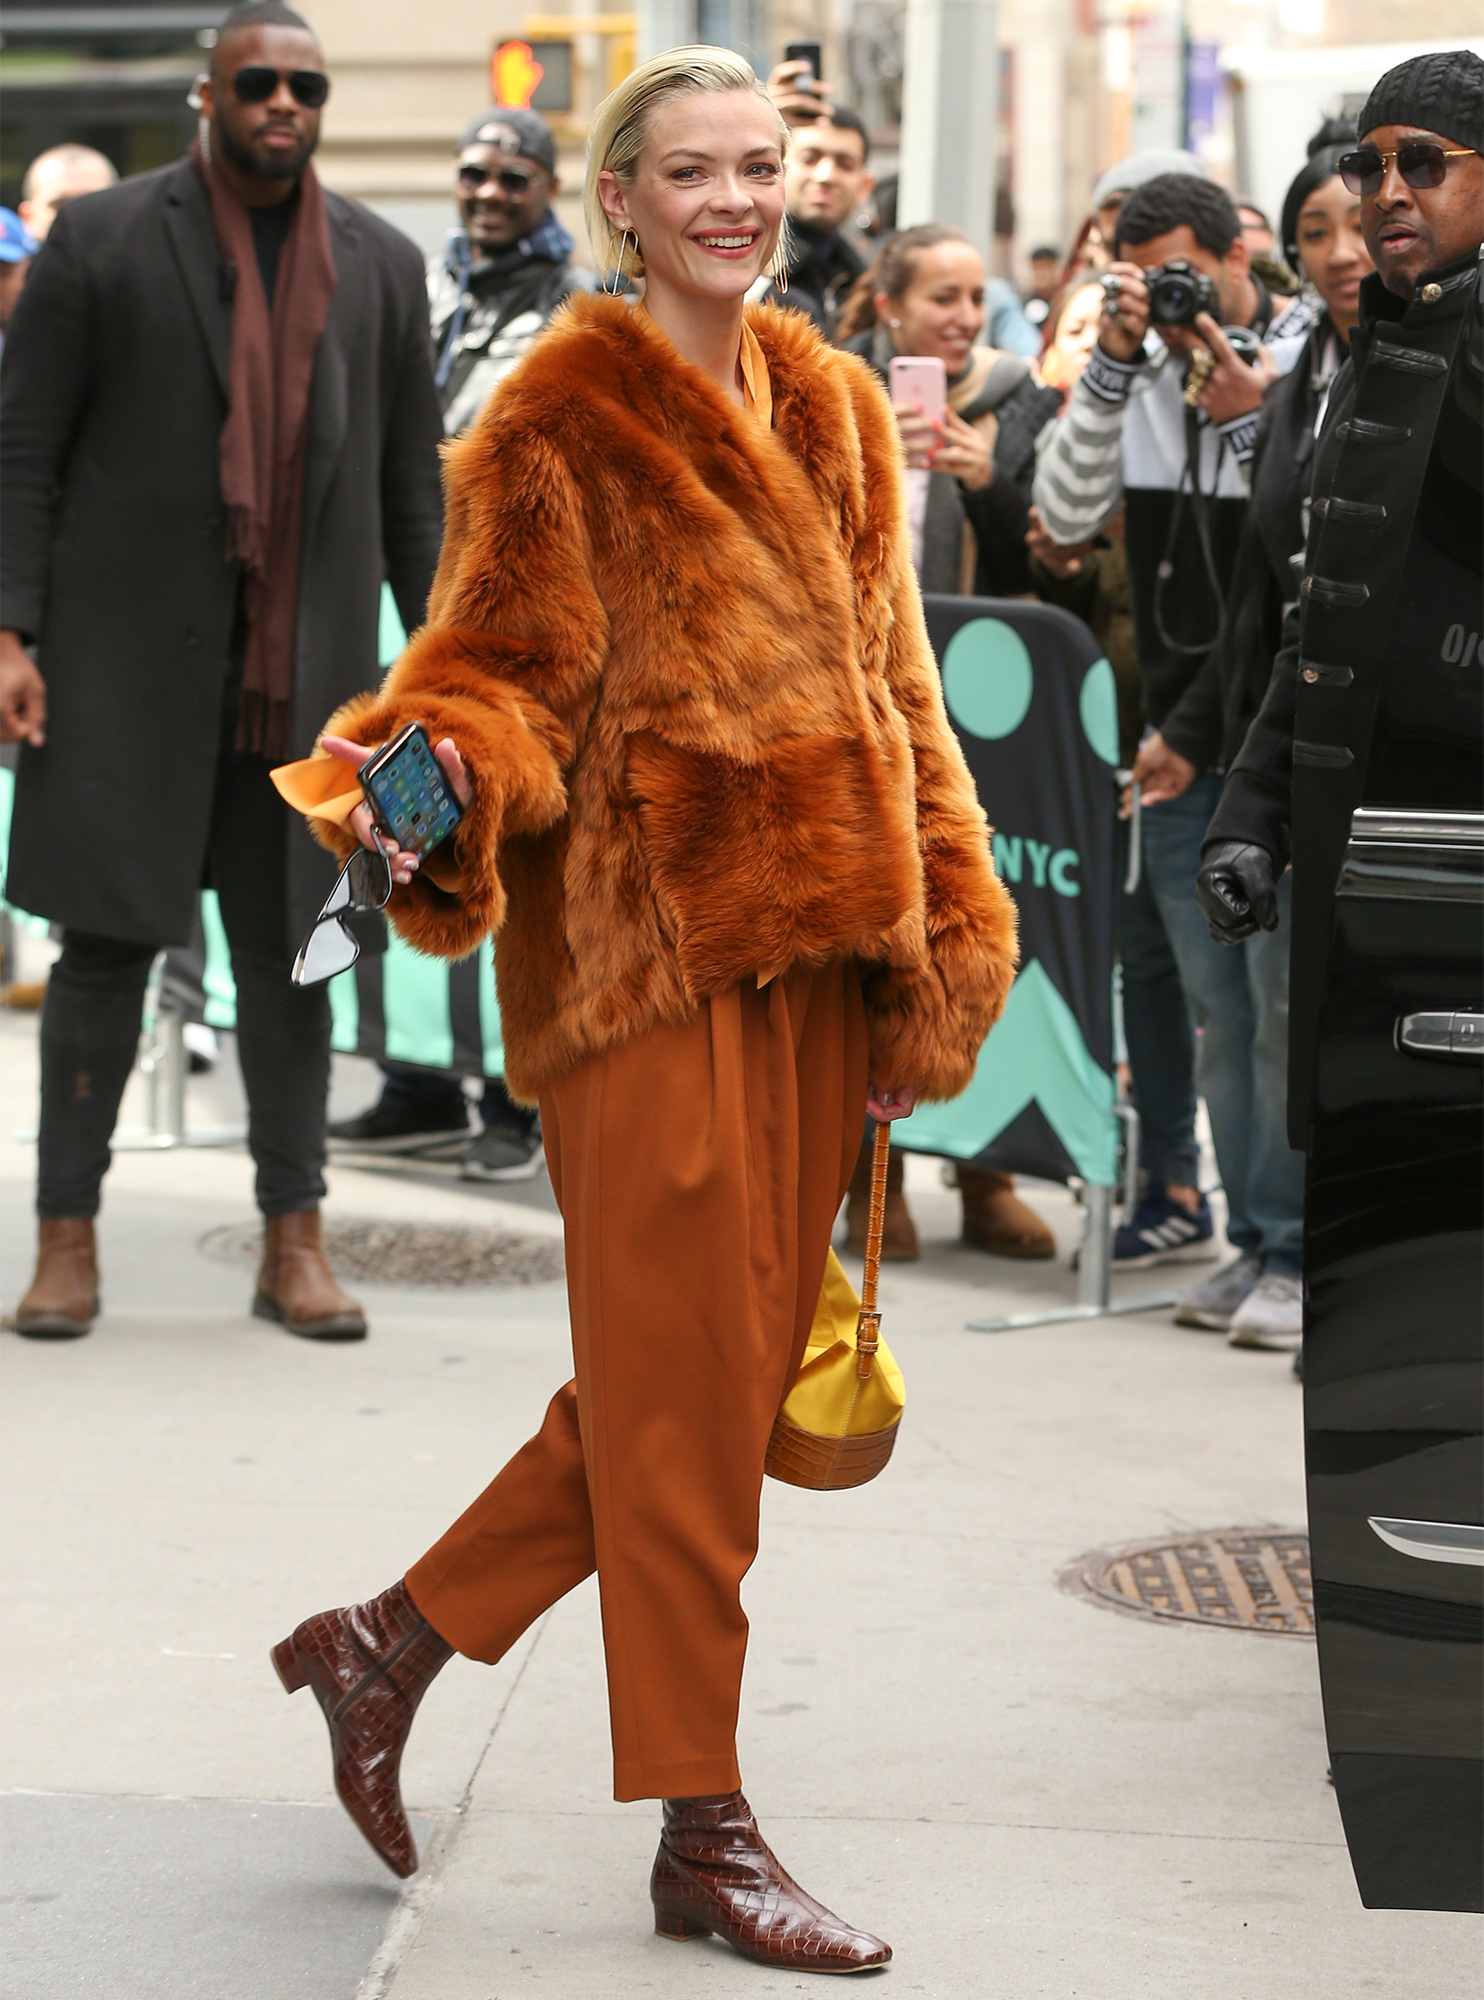 Actress Jaime King leaves 'Build Series in New York City